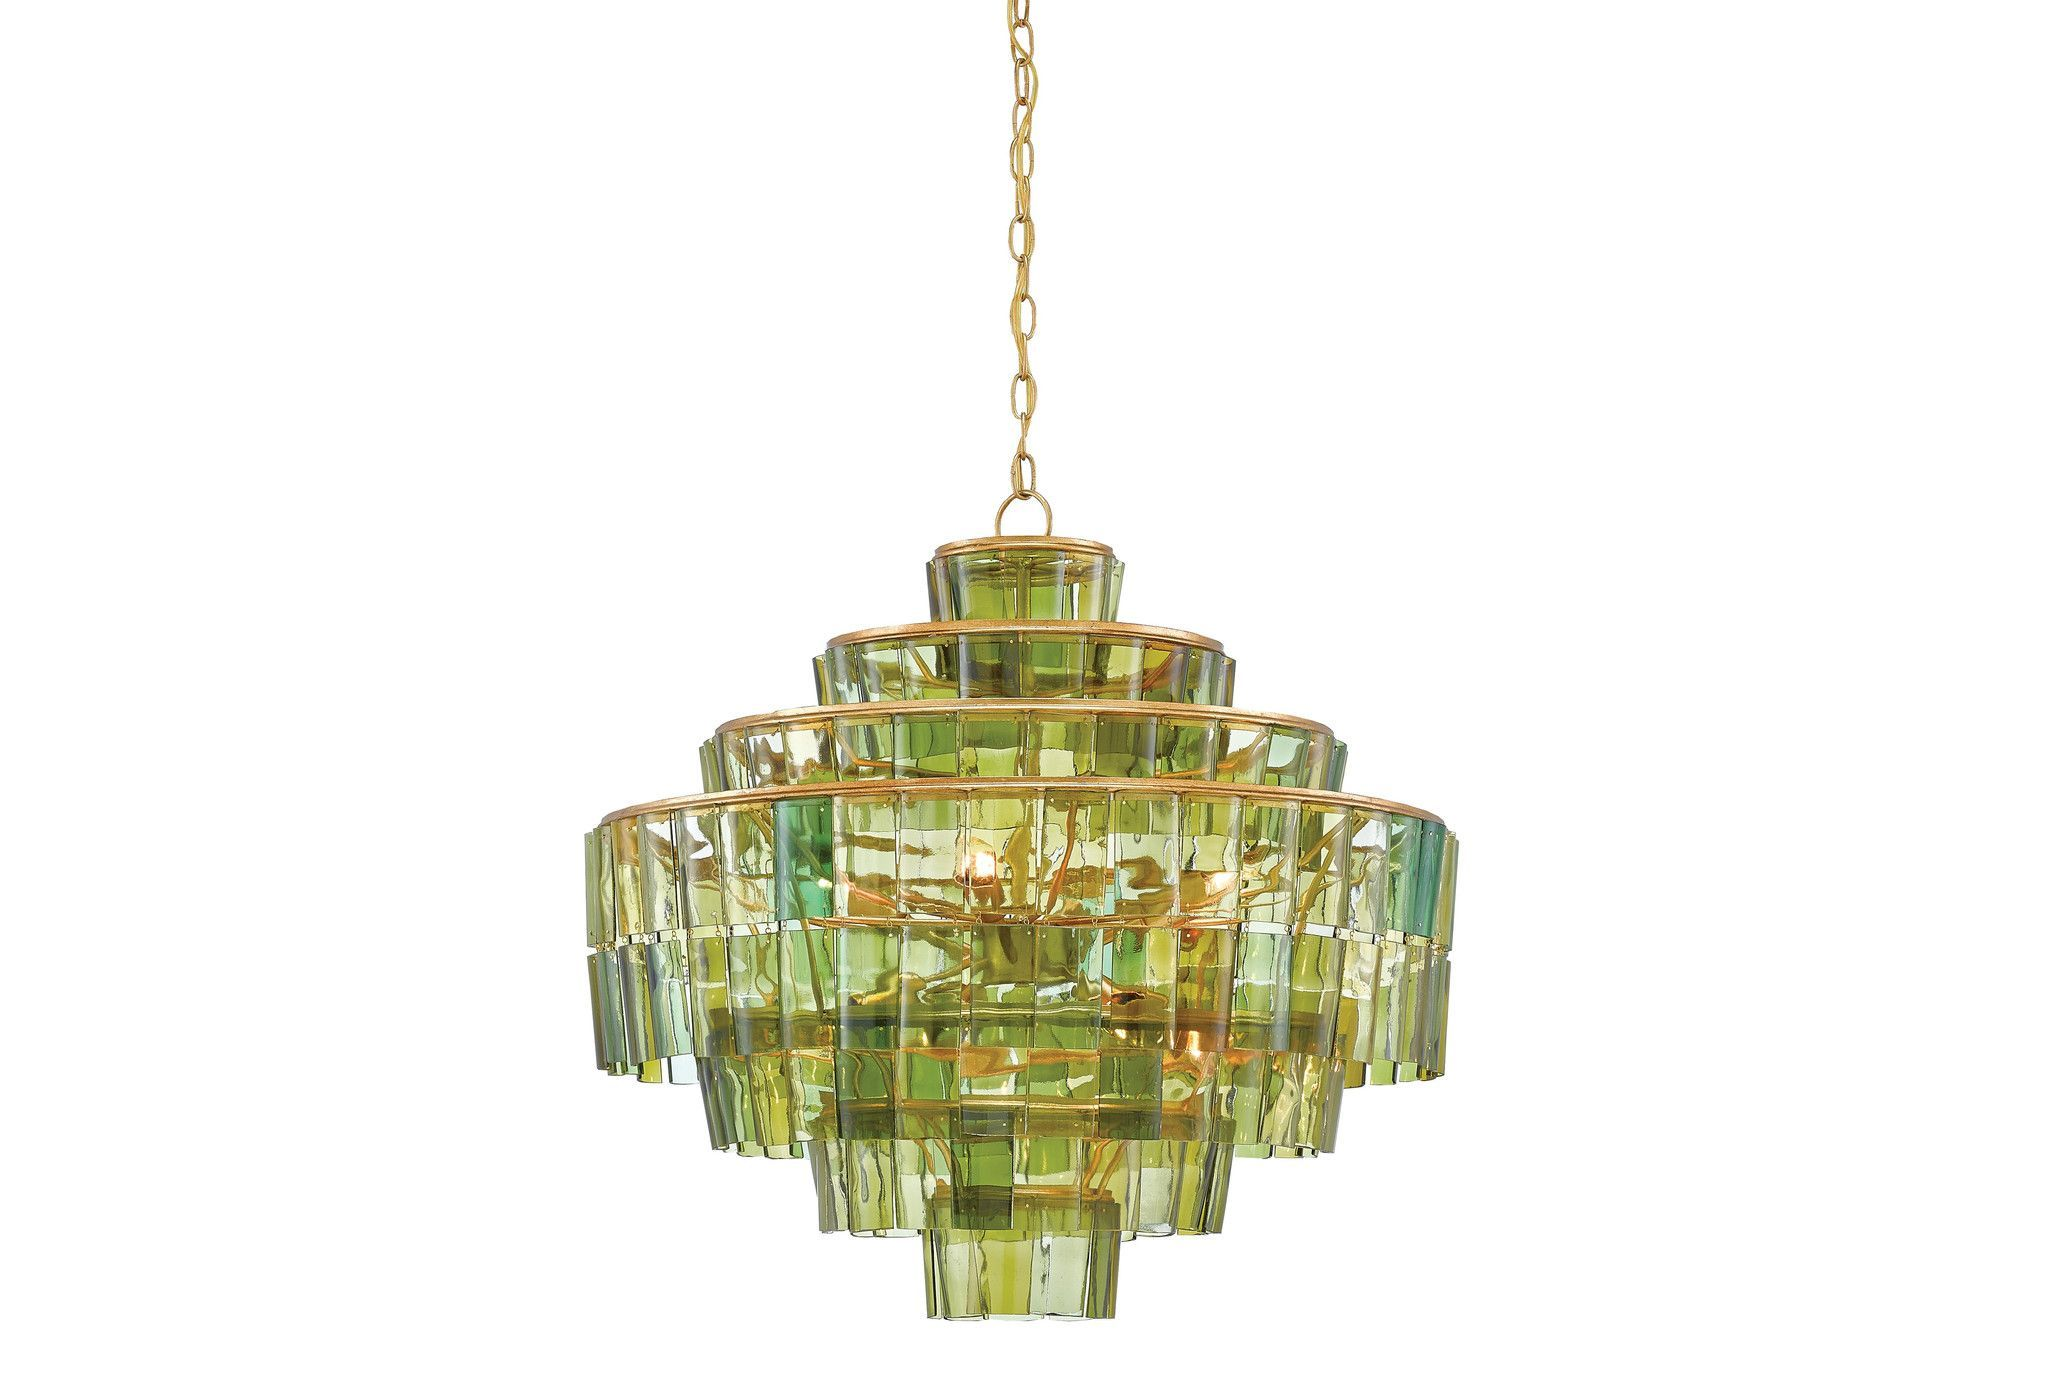 happily dwell chandelier glass green bottle diy